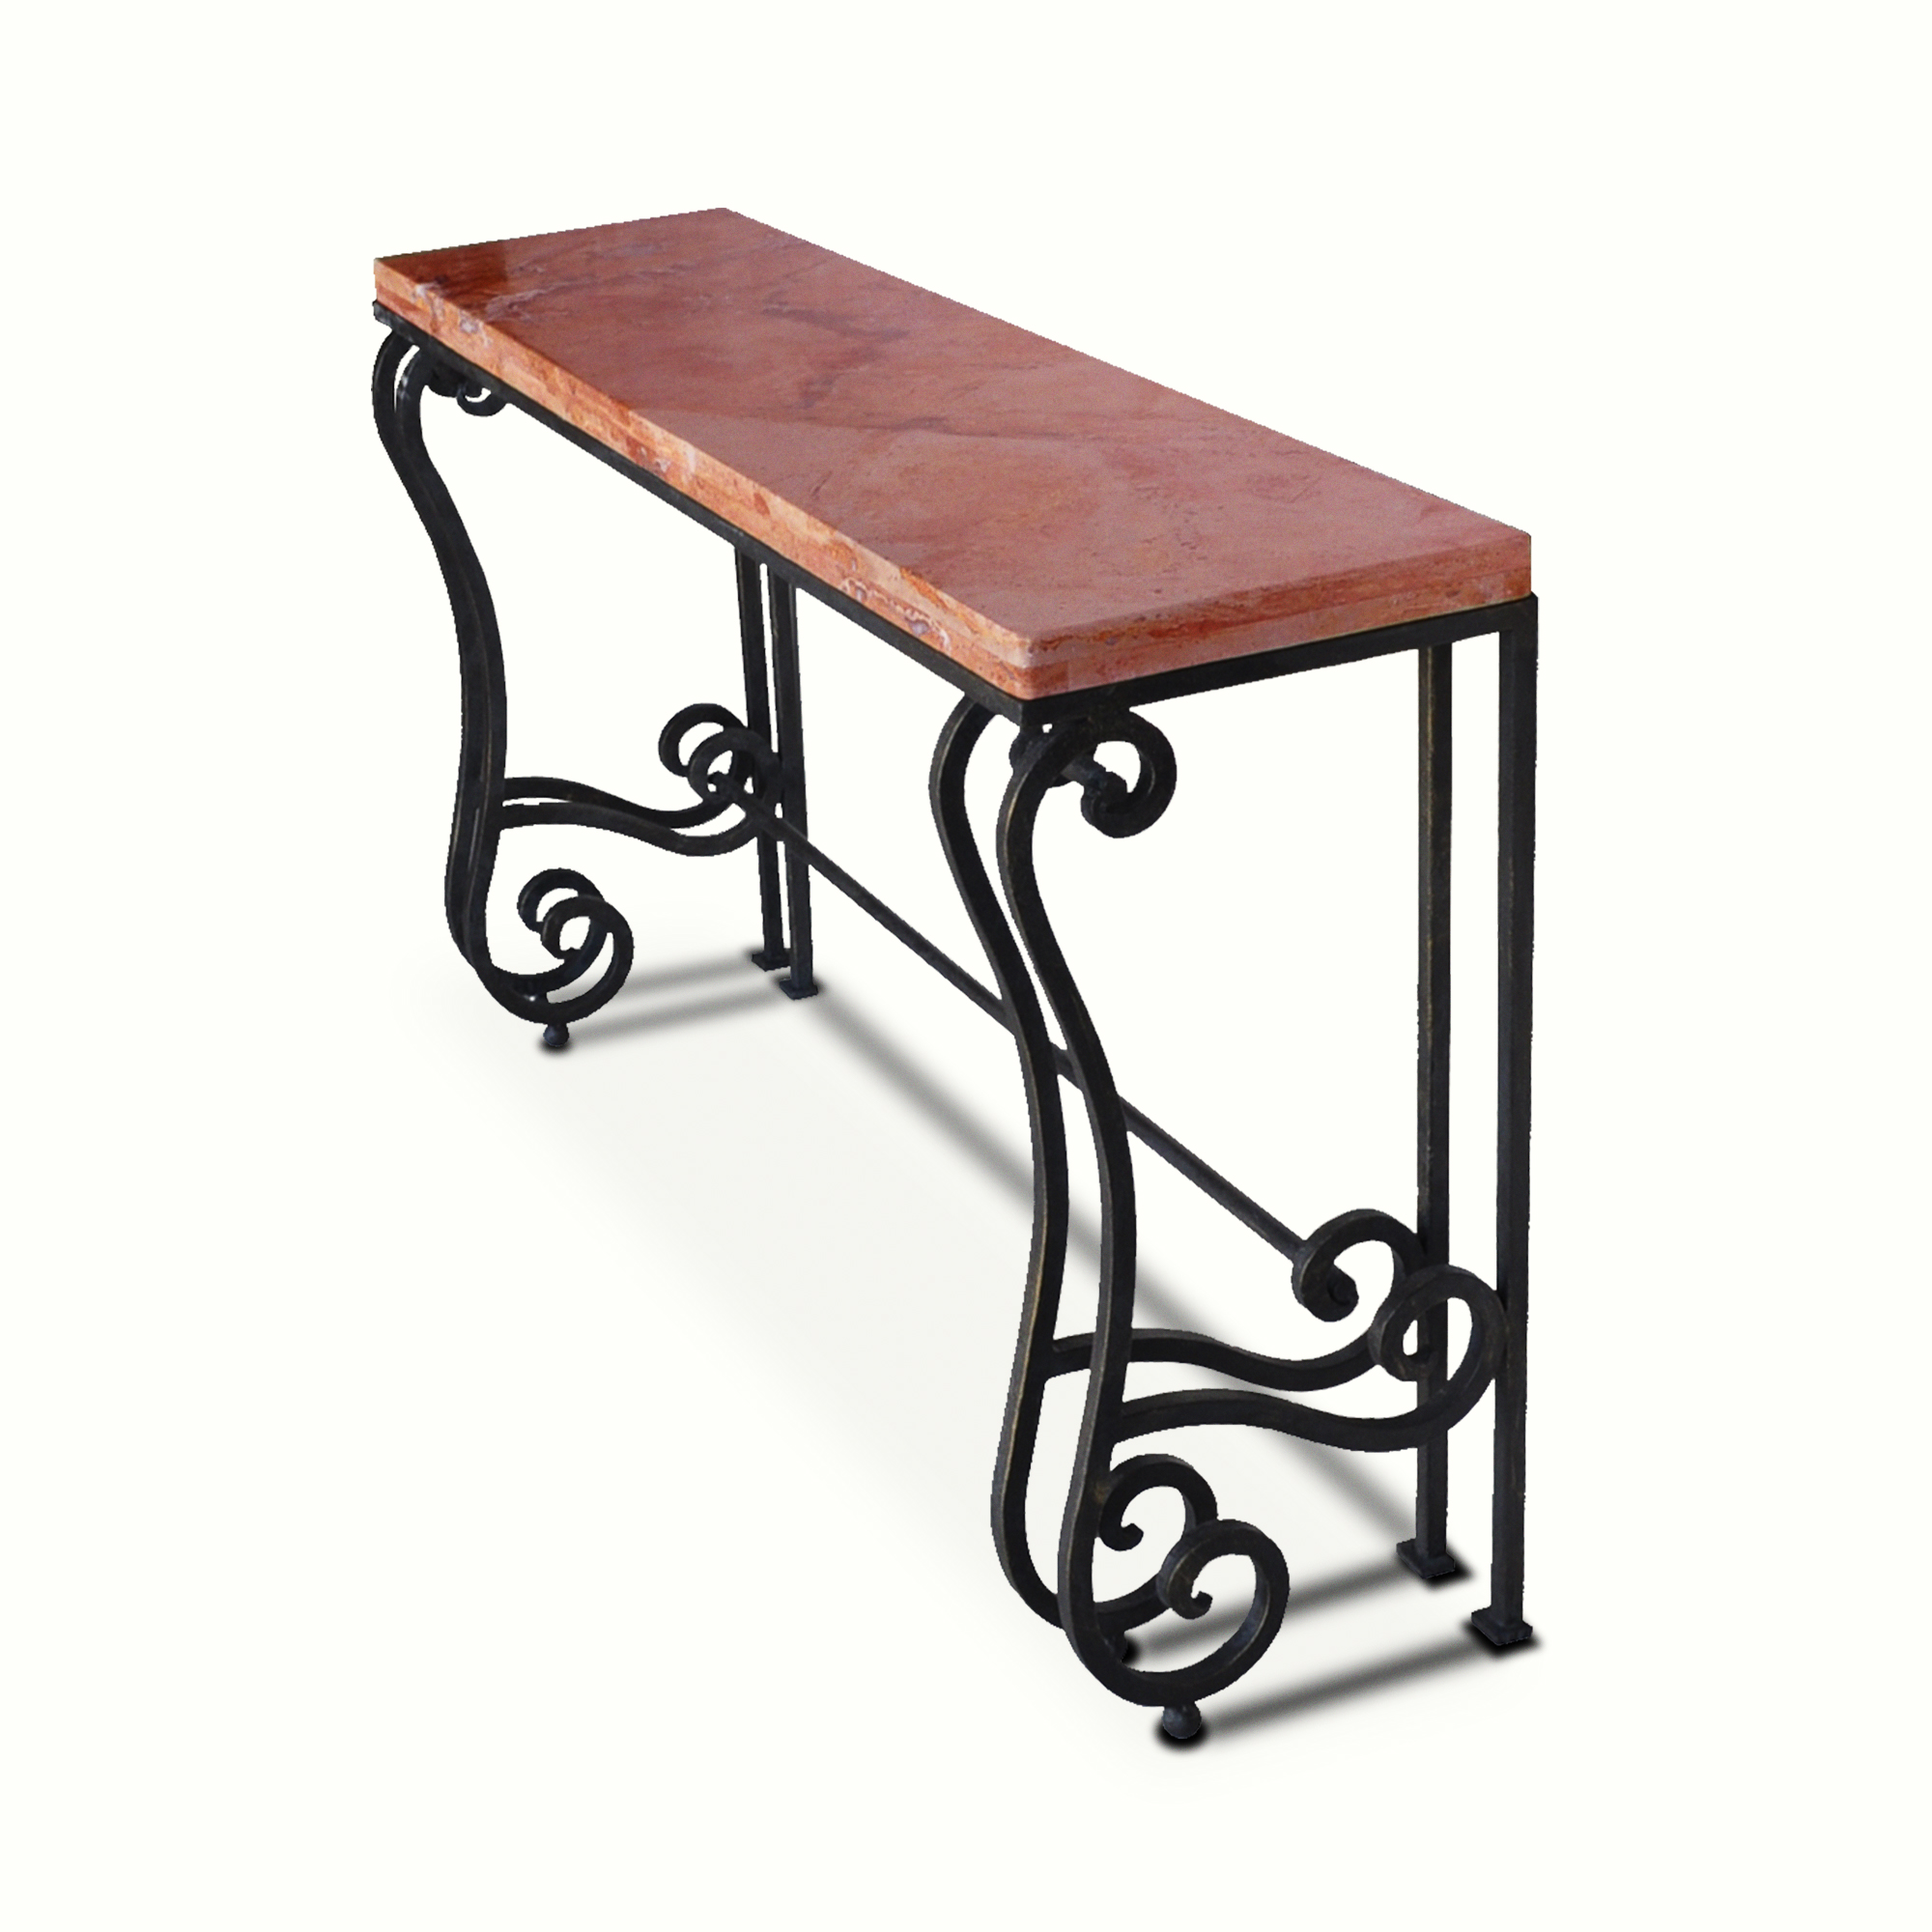 10301-irst-ta Transitional Console Stone Top Iron Console – ADG Lighting Collection